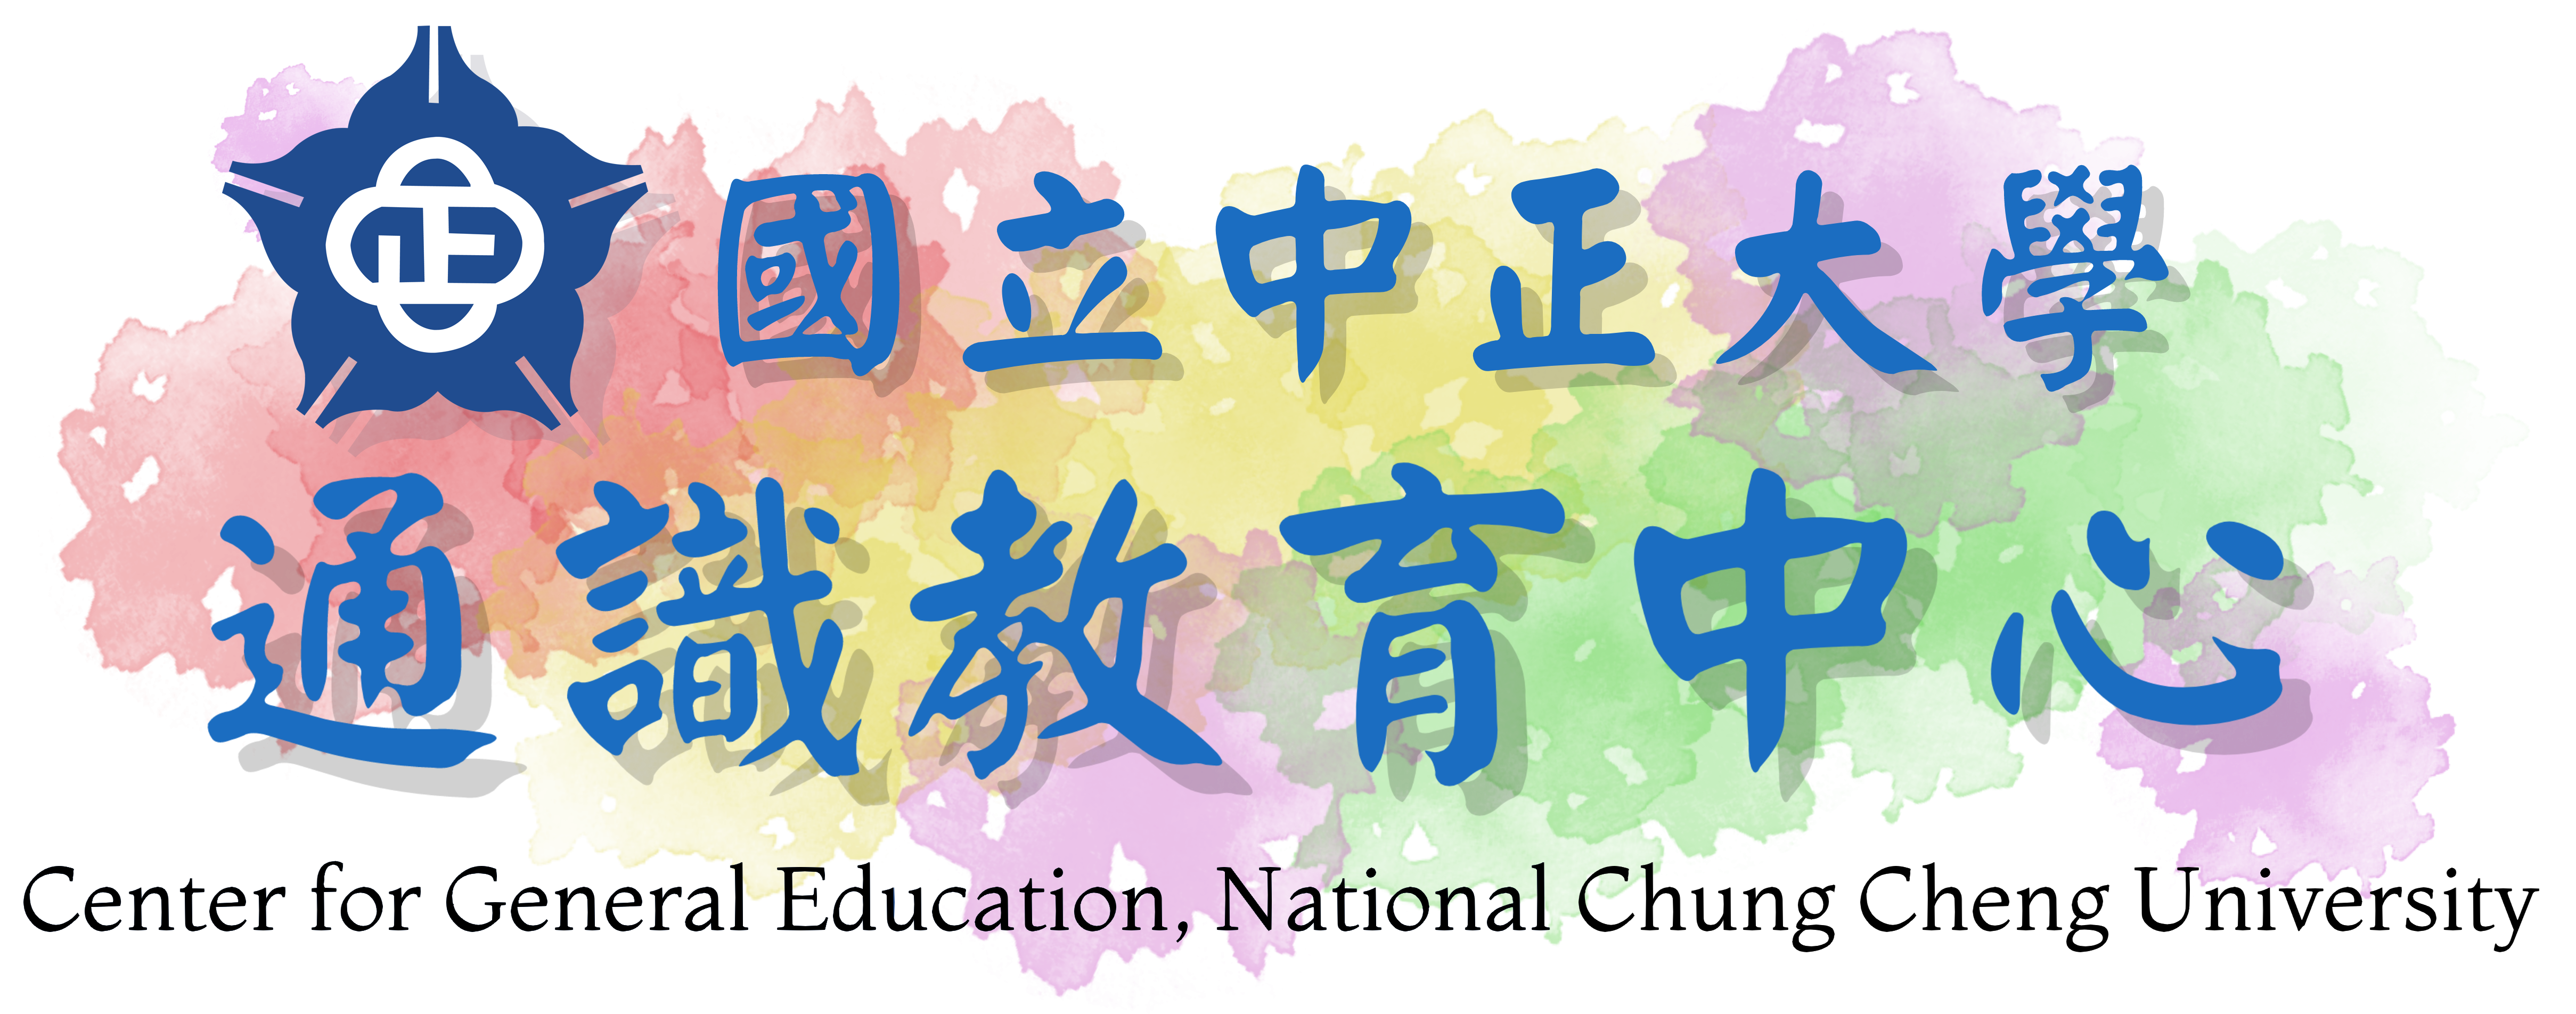 Center for General Education, National Chung Cheng University